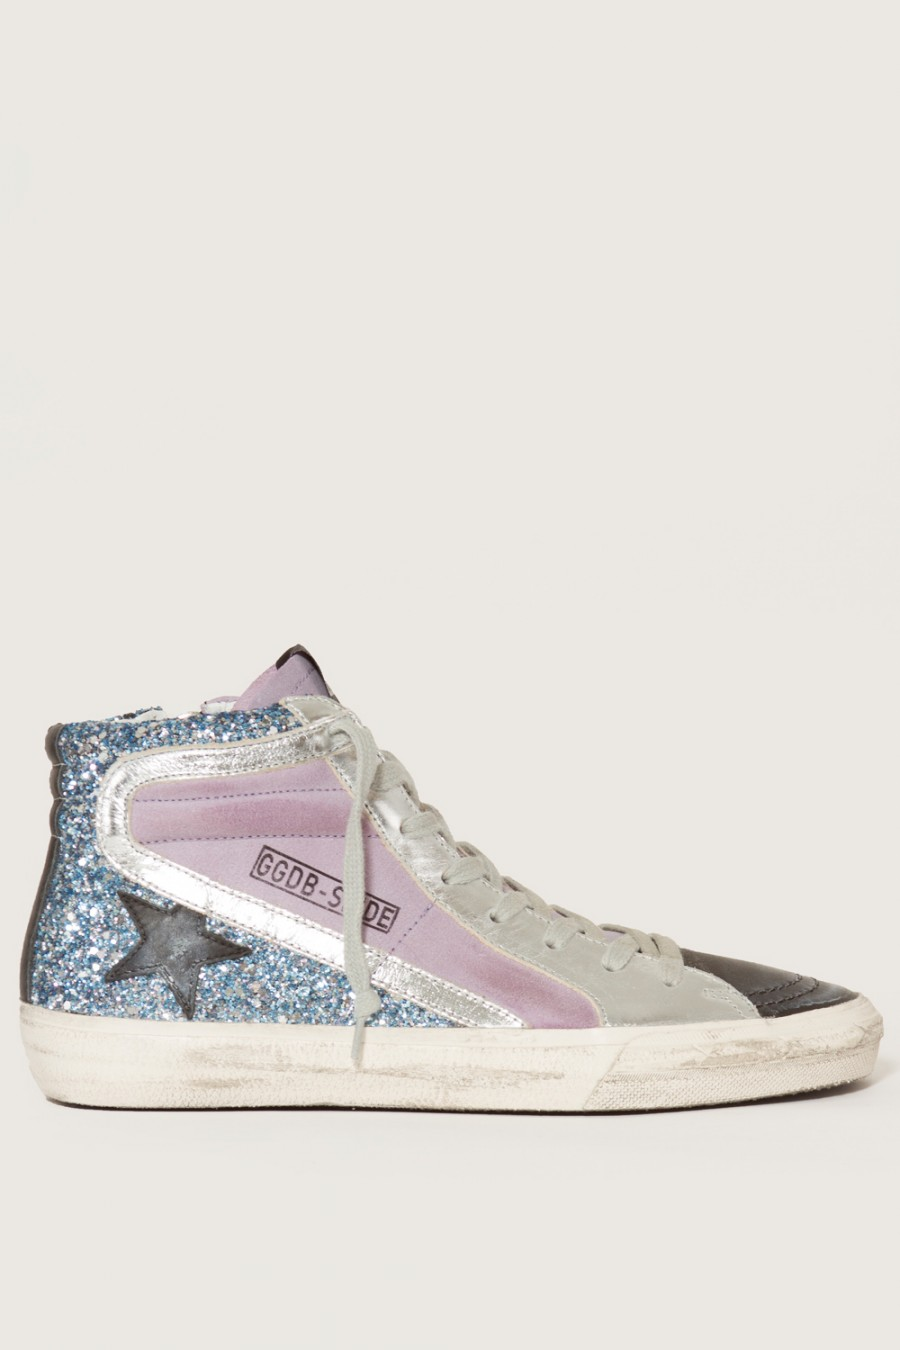 GOLDEN GOOSE Multicolor Slide High-Top Sneakers at MADISON LOS ANGELES